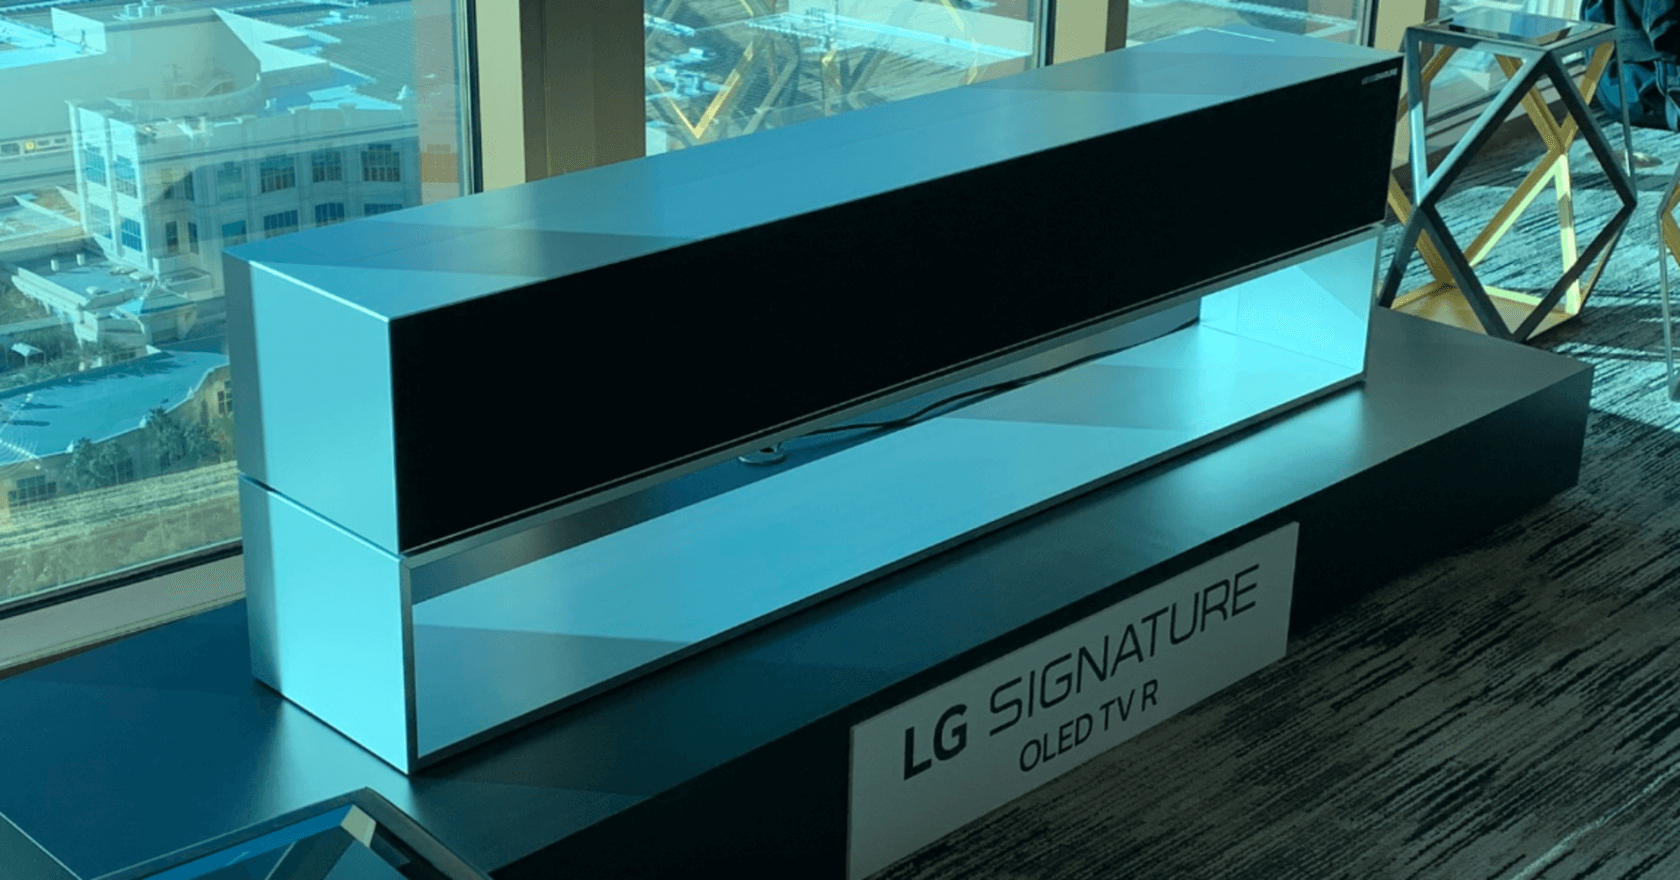 88179608e261 LG claims it provides the same image quality as their other non-rollable  OLED models. Until we can get a direct comparison though, we'll just have  to take ...